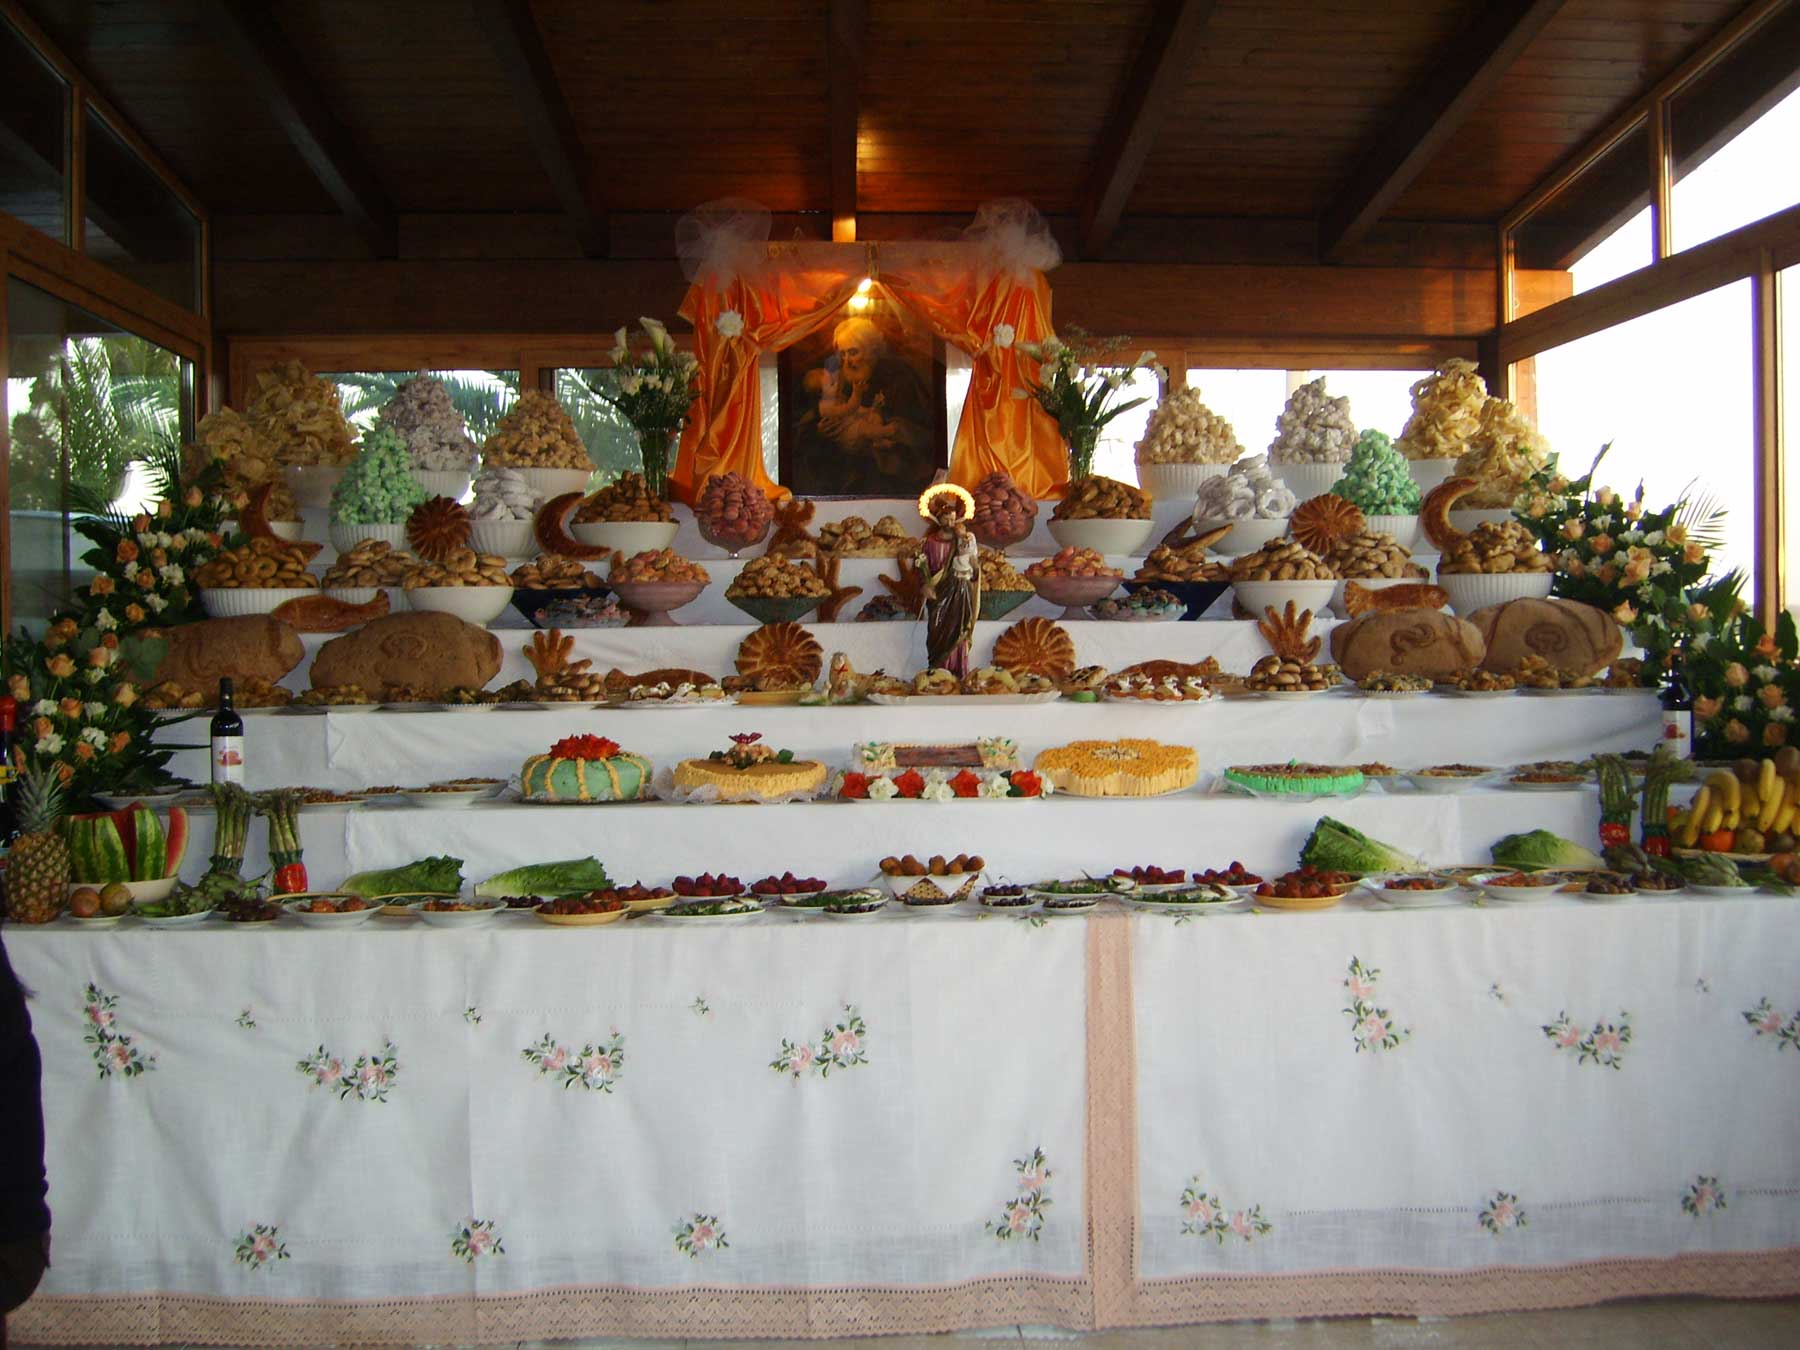 St Joseph's table with many tiers